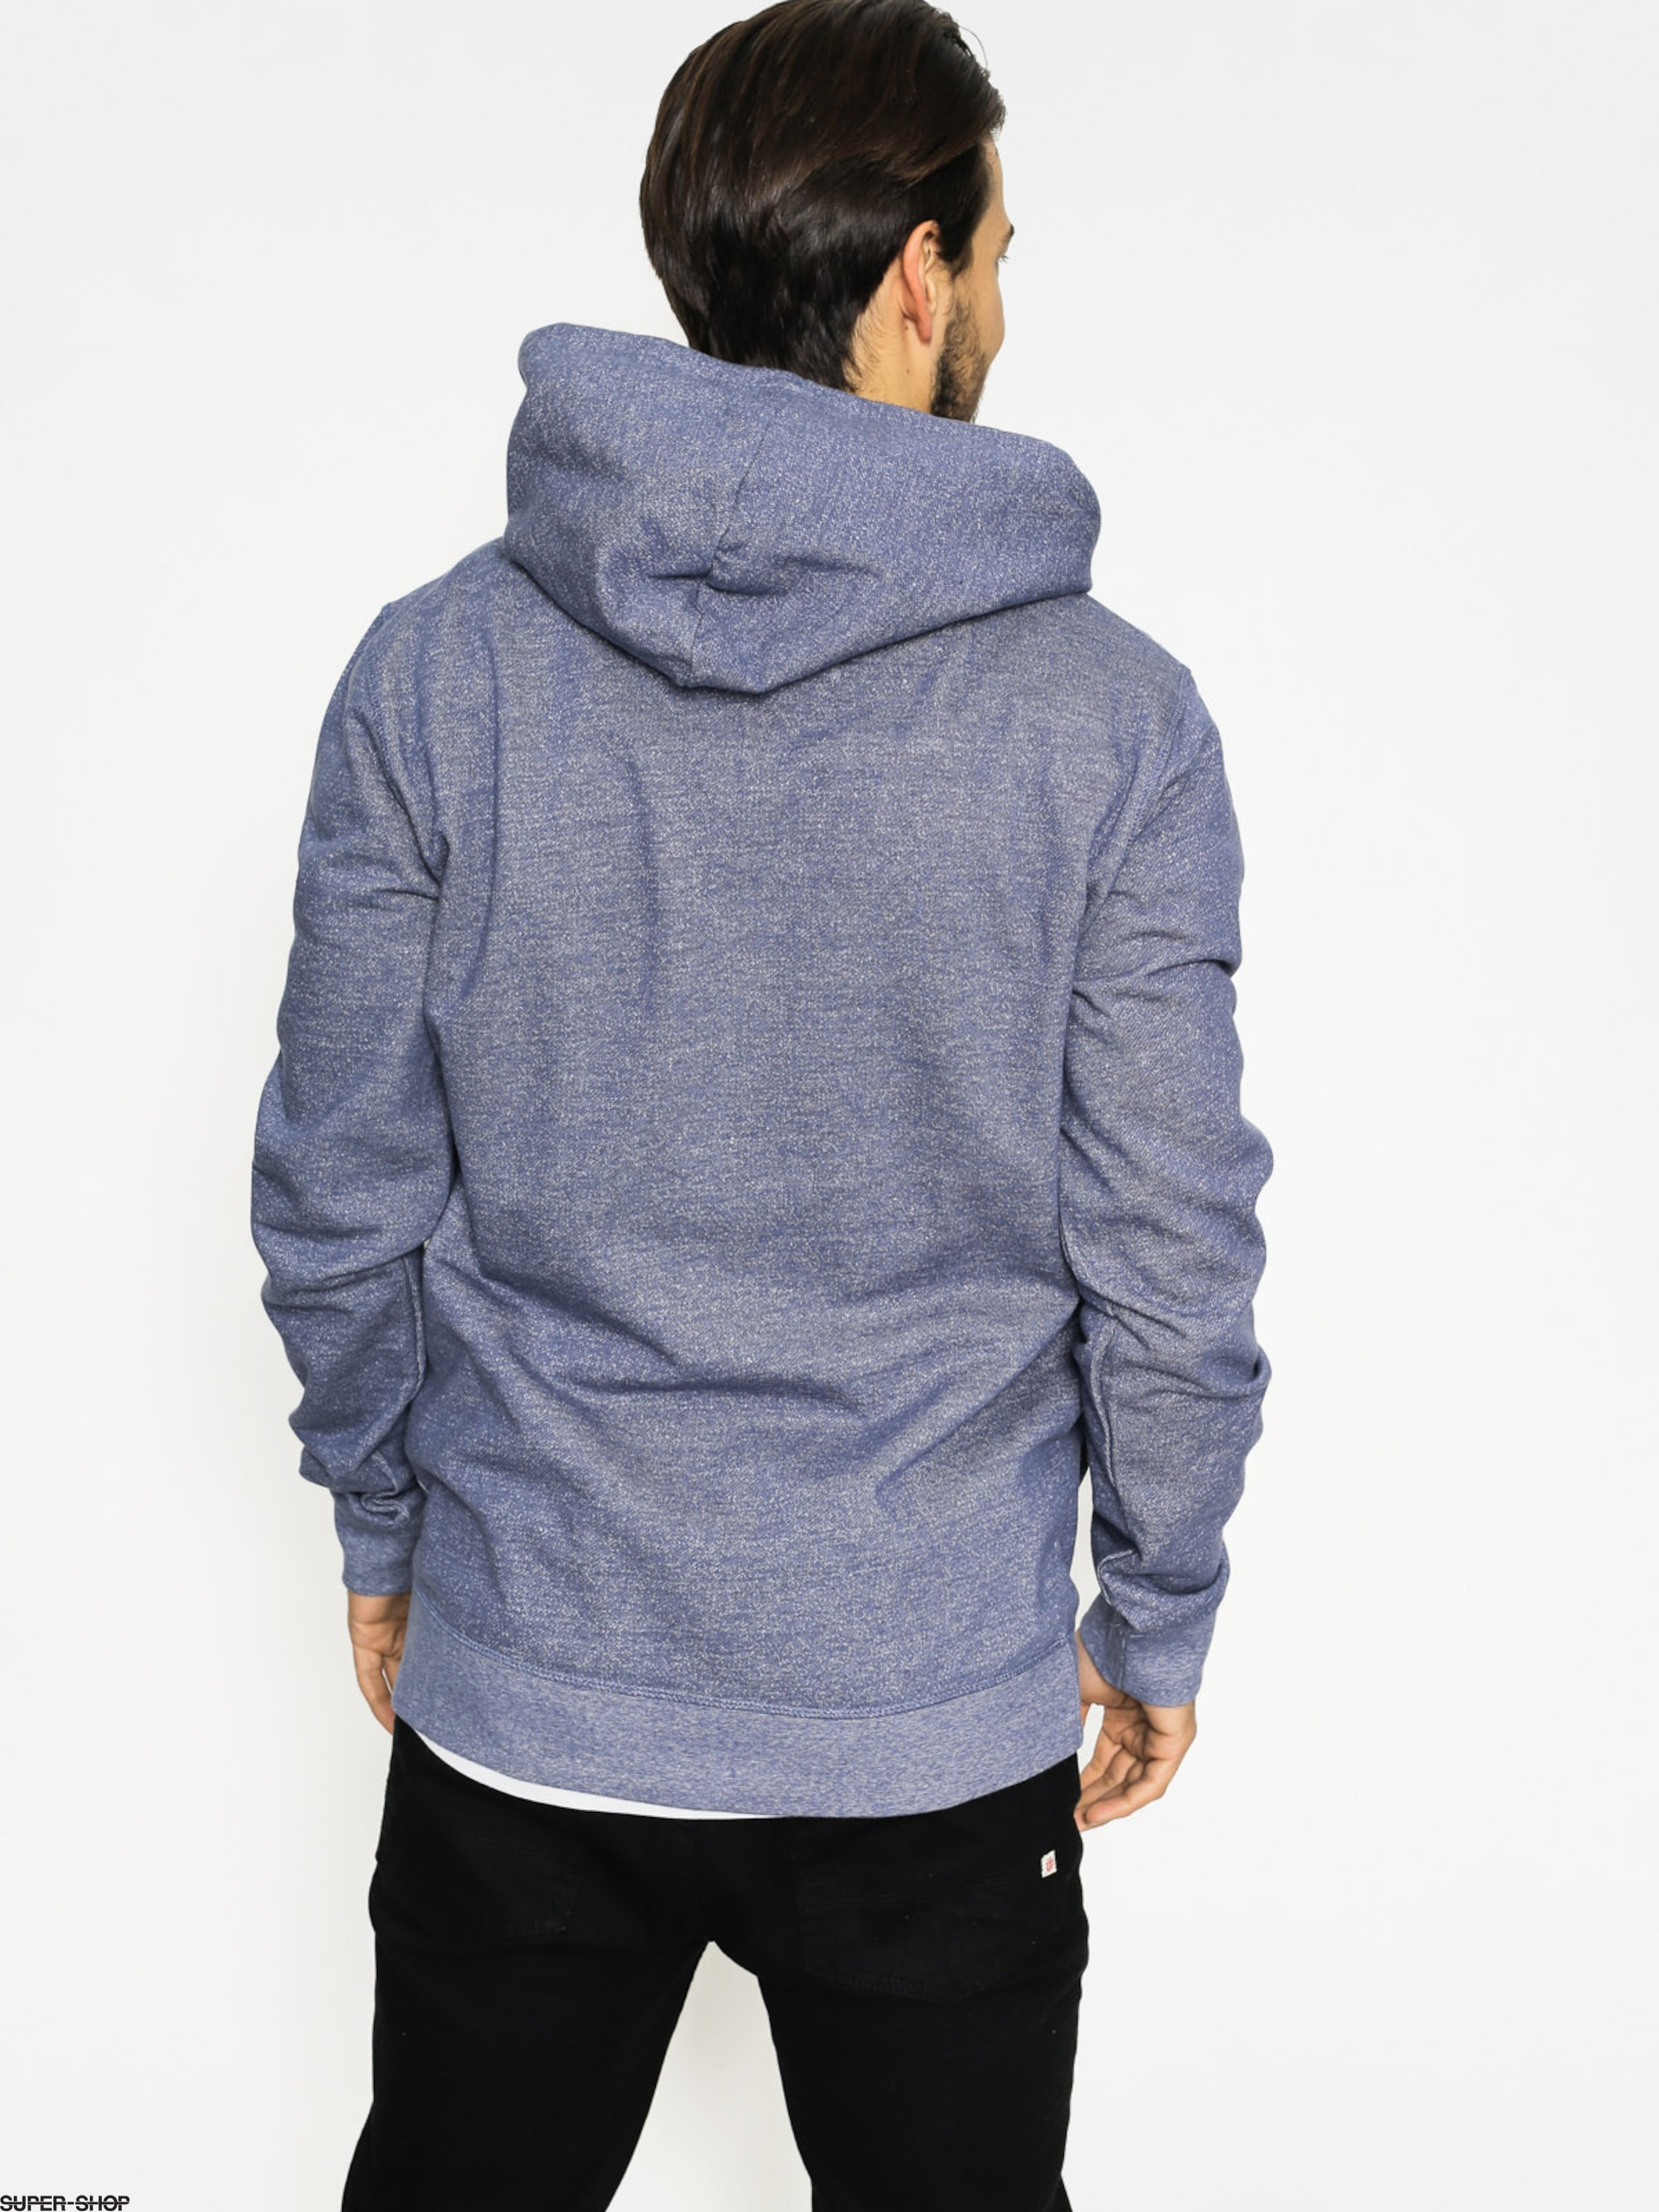 Quiksilver Hoodie Dark Voice ZHD (night shadow blue) a747d53e645